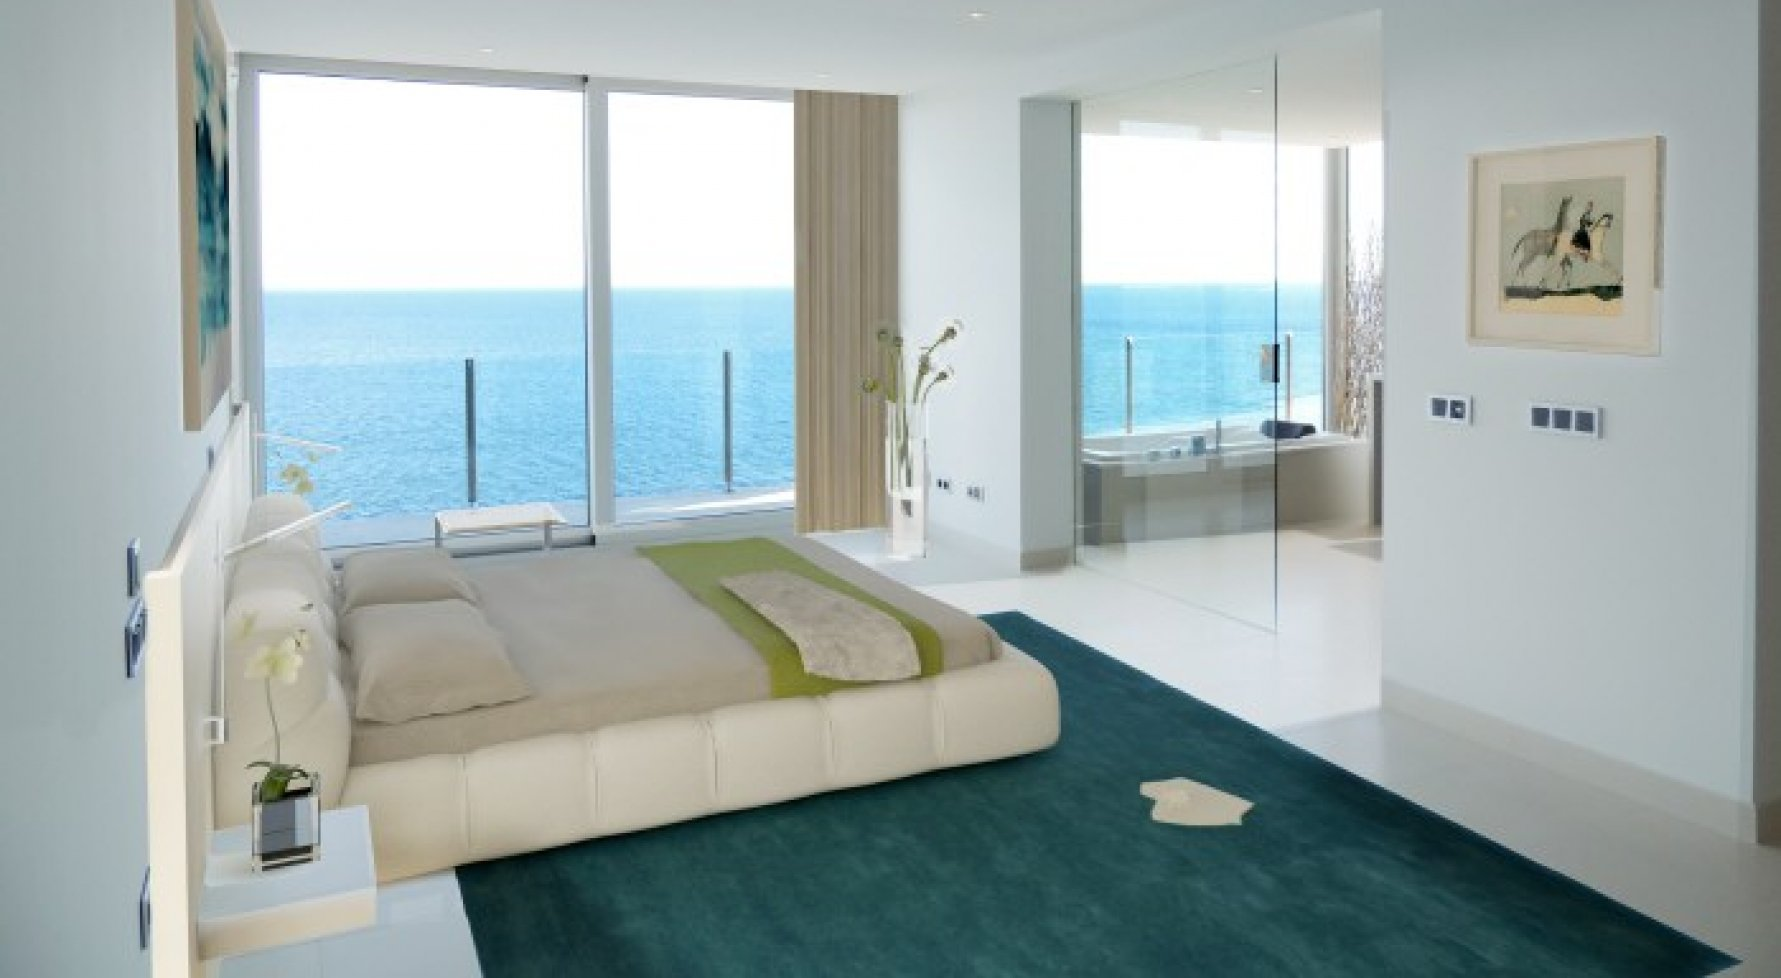 Property in 07589  Provensals: Mallorca: Stylish and meters away from the sea - picture 3